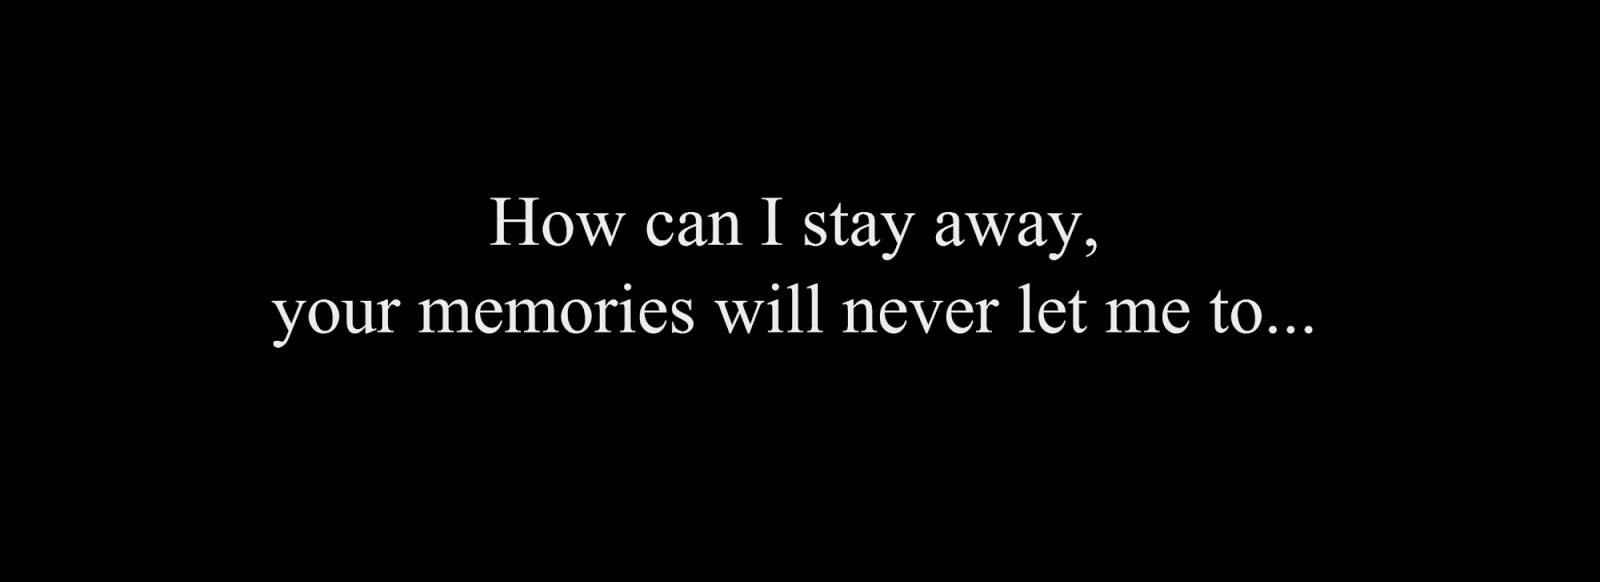 How can I stay away, your memories will never let me to..